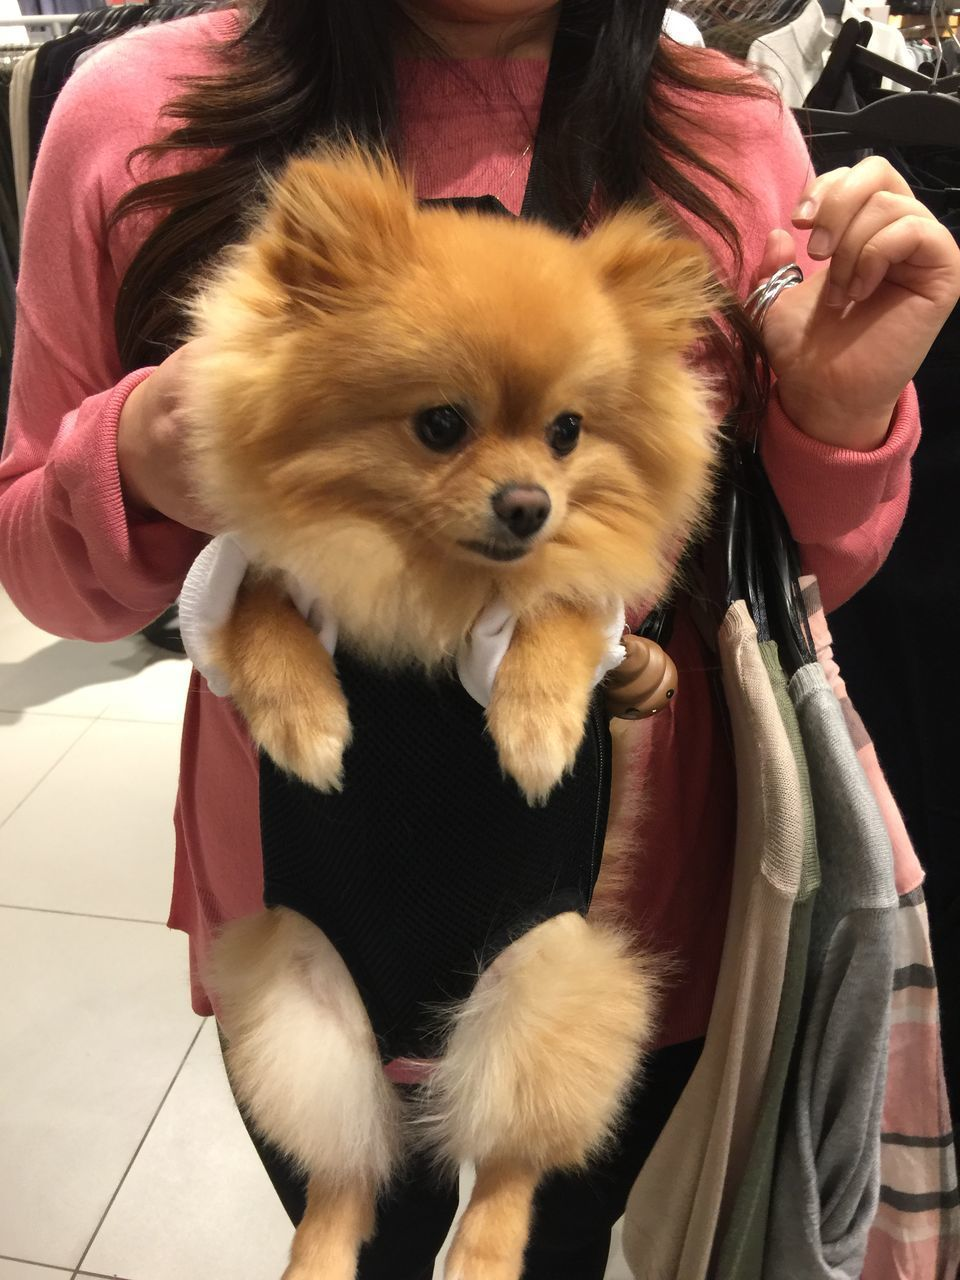 real people, dog, pets, mammal, domestic animals, one animal, one person, holding, leisure activity, human hand, pomeranian, lifestyles, women, human body part, indoors, close-up, day